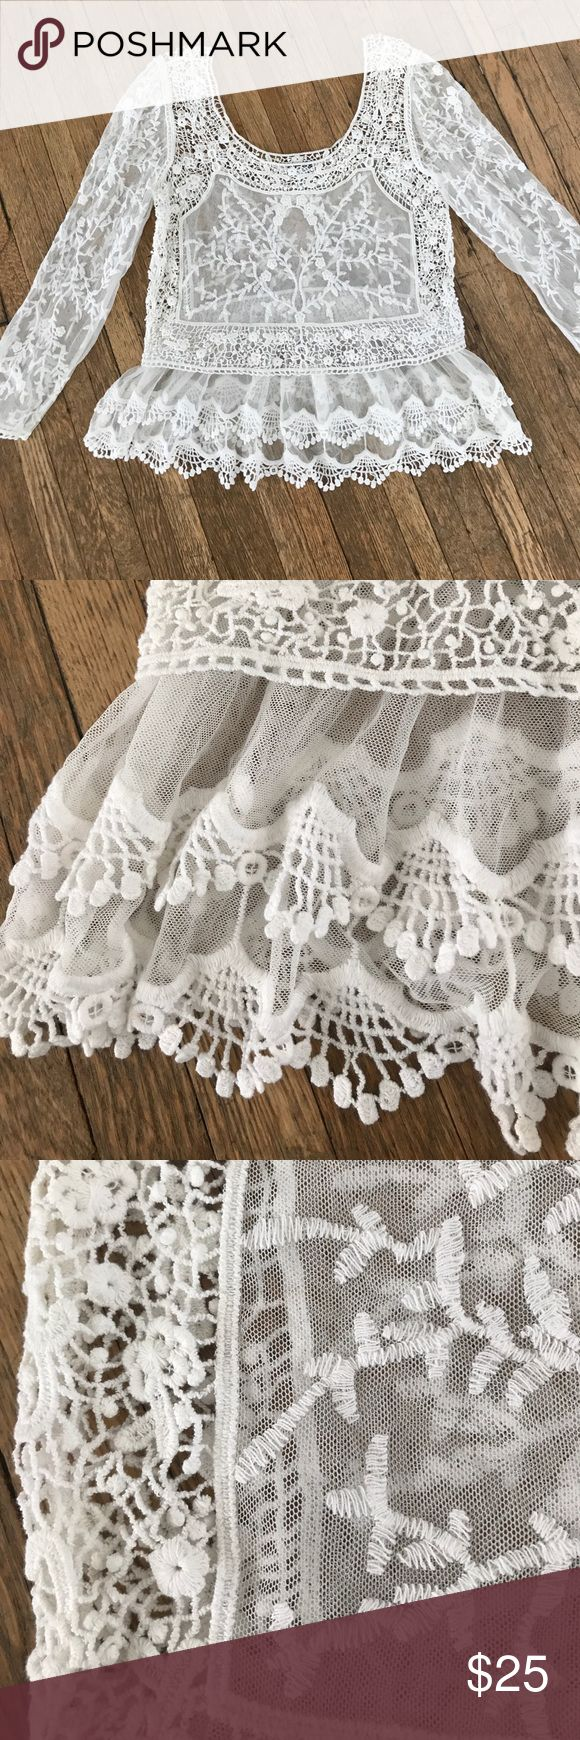 EUC Beautiful White Lace and Crocheted Boho Top Beautiful boho white lace top with crocheted details. Low scoop neck and two tiers of ruffles at the bottom with eyelet trim. Sleeves are 7/8th length. Express Tops Blouses